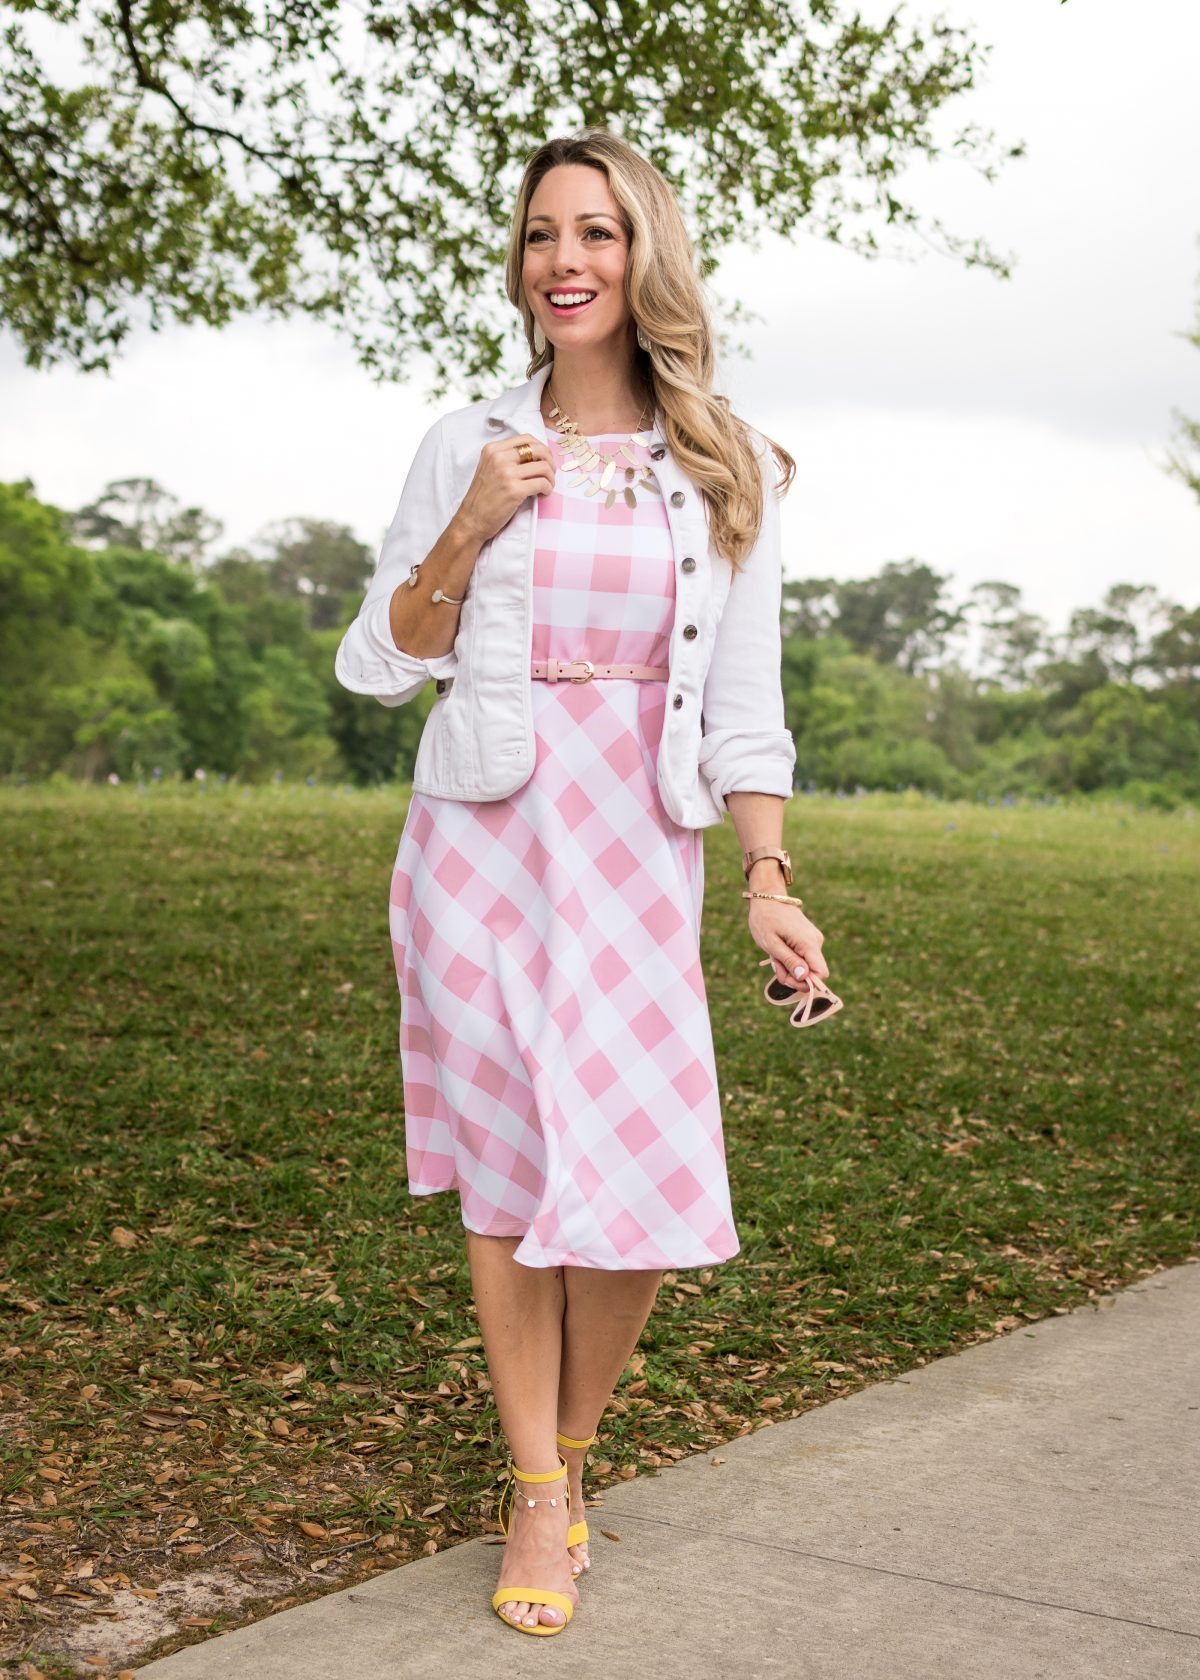 Spring fashion - pink and white gingham dress 11